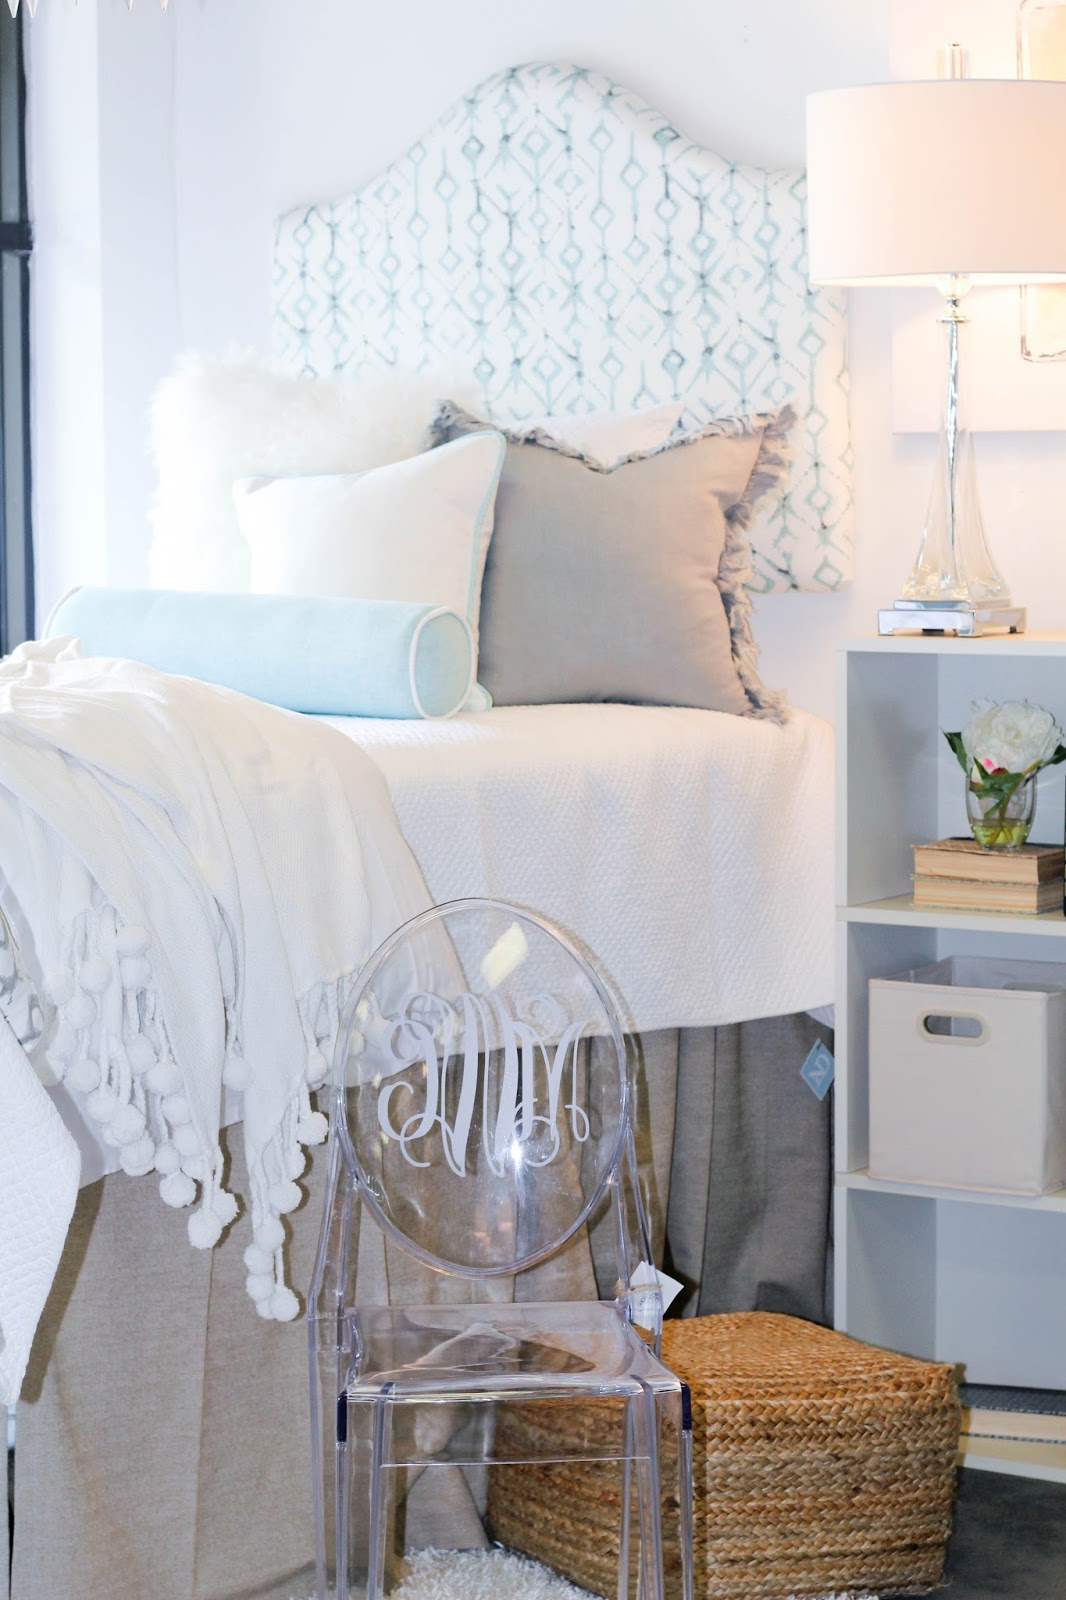 Best Prep In Your Step Dorm Room Design With Not Just Dorms This Month